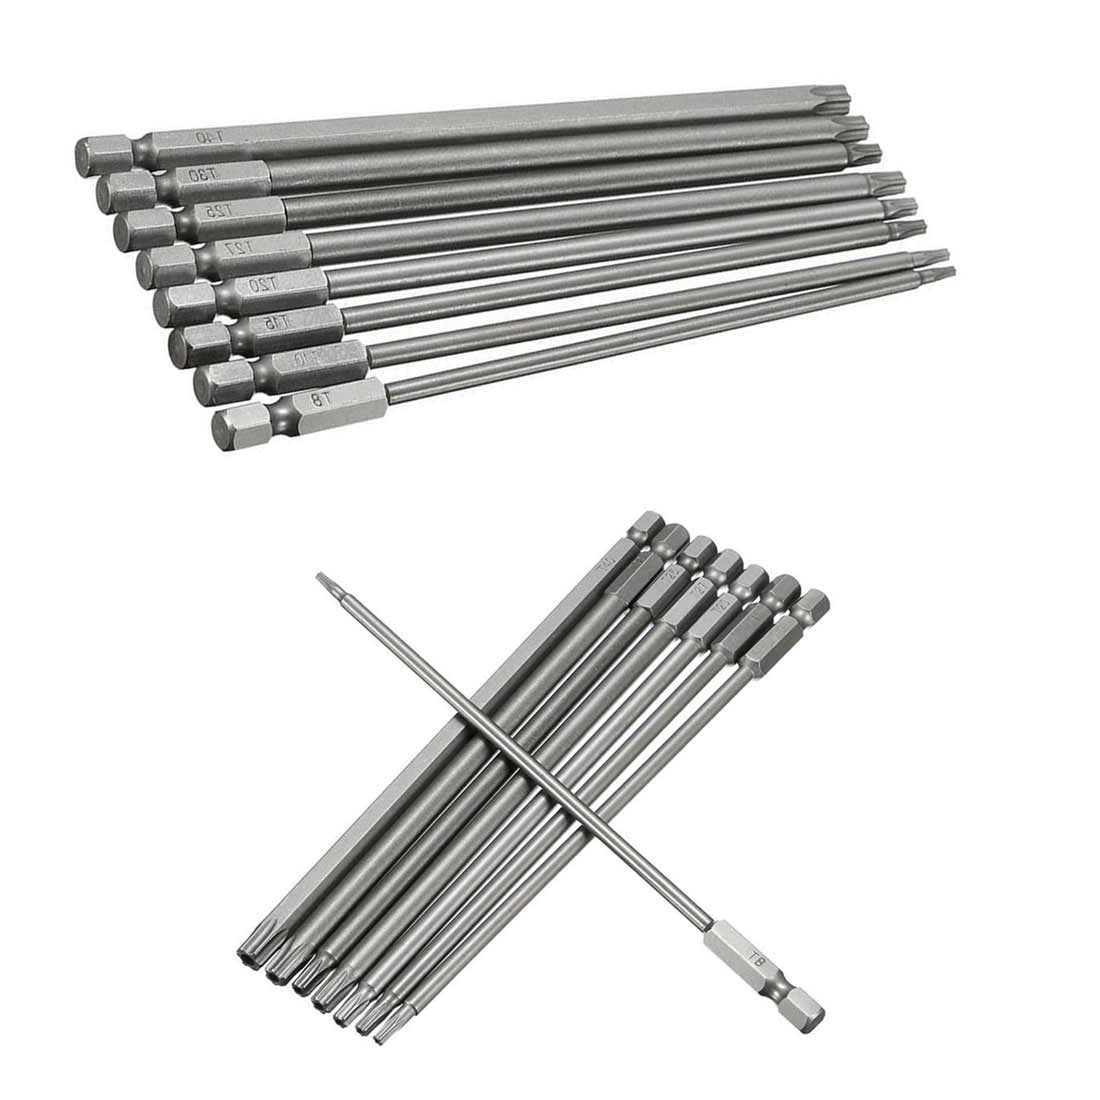 8pcs Magnetic Torx Screwdriver Bit Set 150mm Long Steel Electric Screwdrier Tools T8/T10/T15/T20/T25/T27/T30/T40